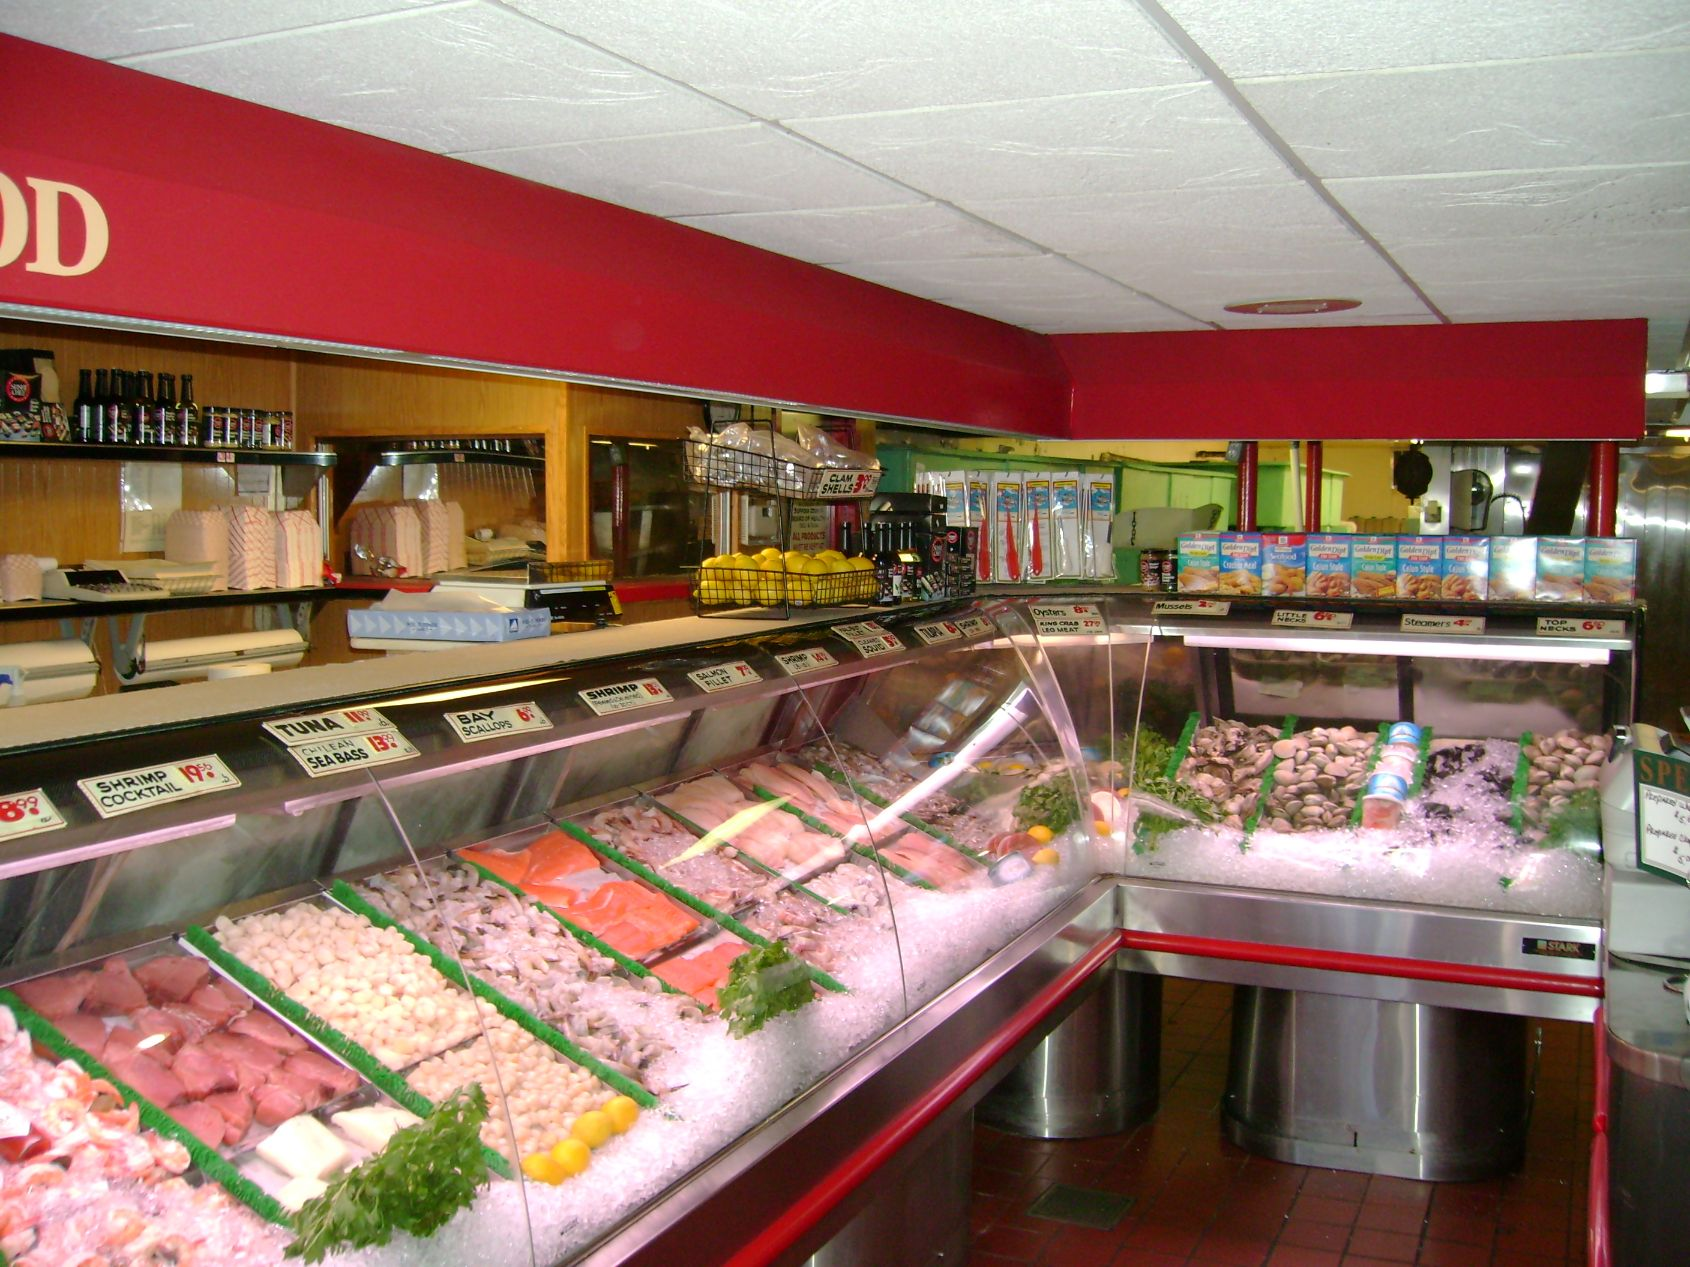 interior of the fish market with cases lined with fresh fish